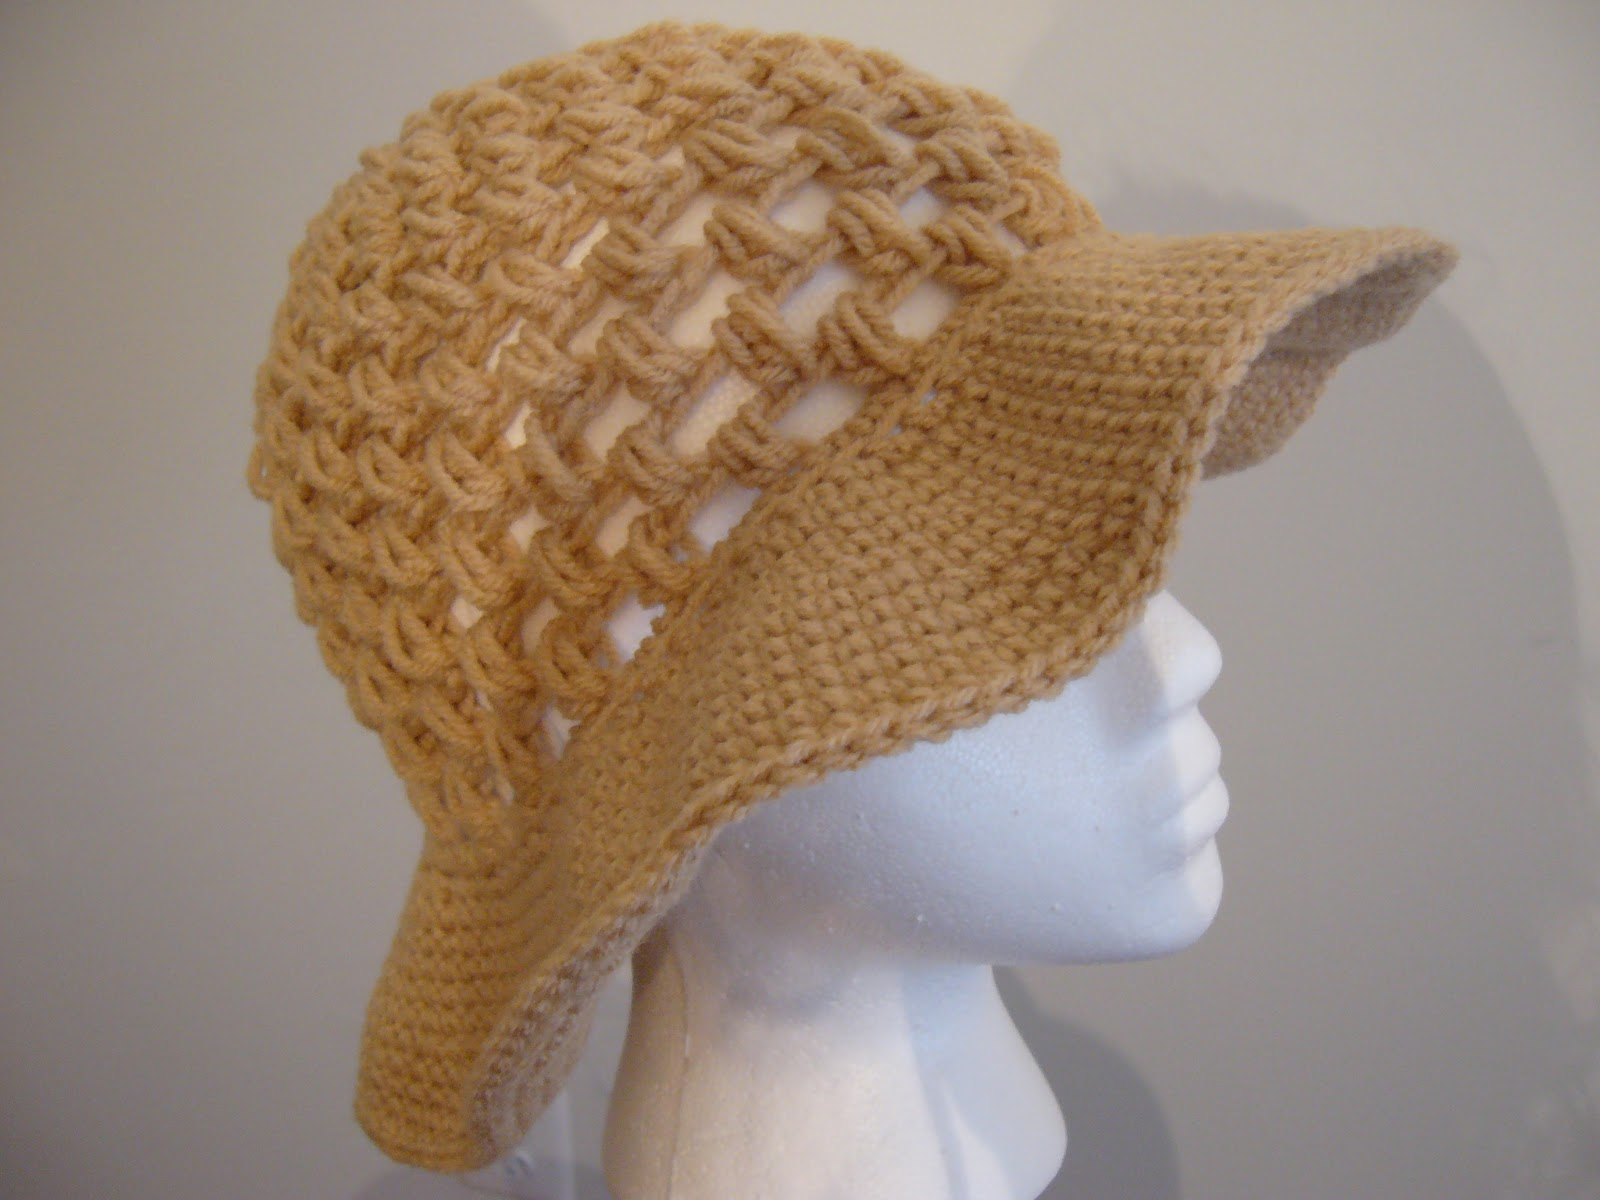 Crochet Pattern Sun Hat : Floppy Sun Hat Free Crochet Patterns